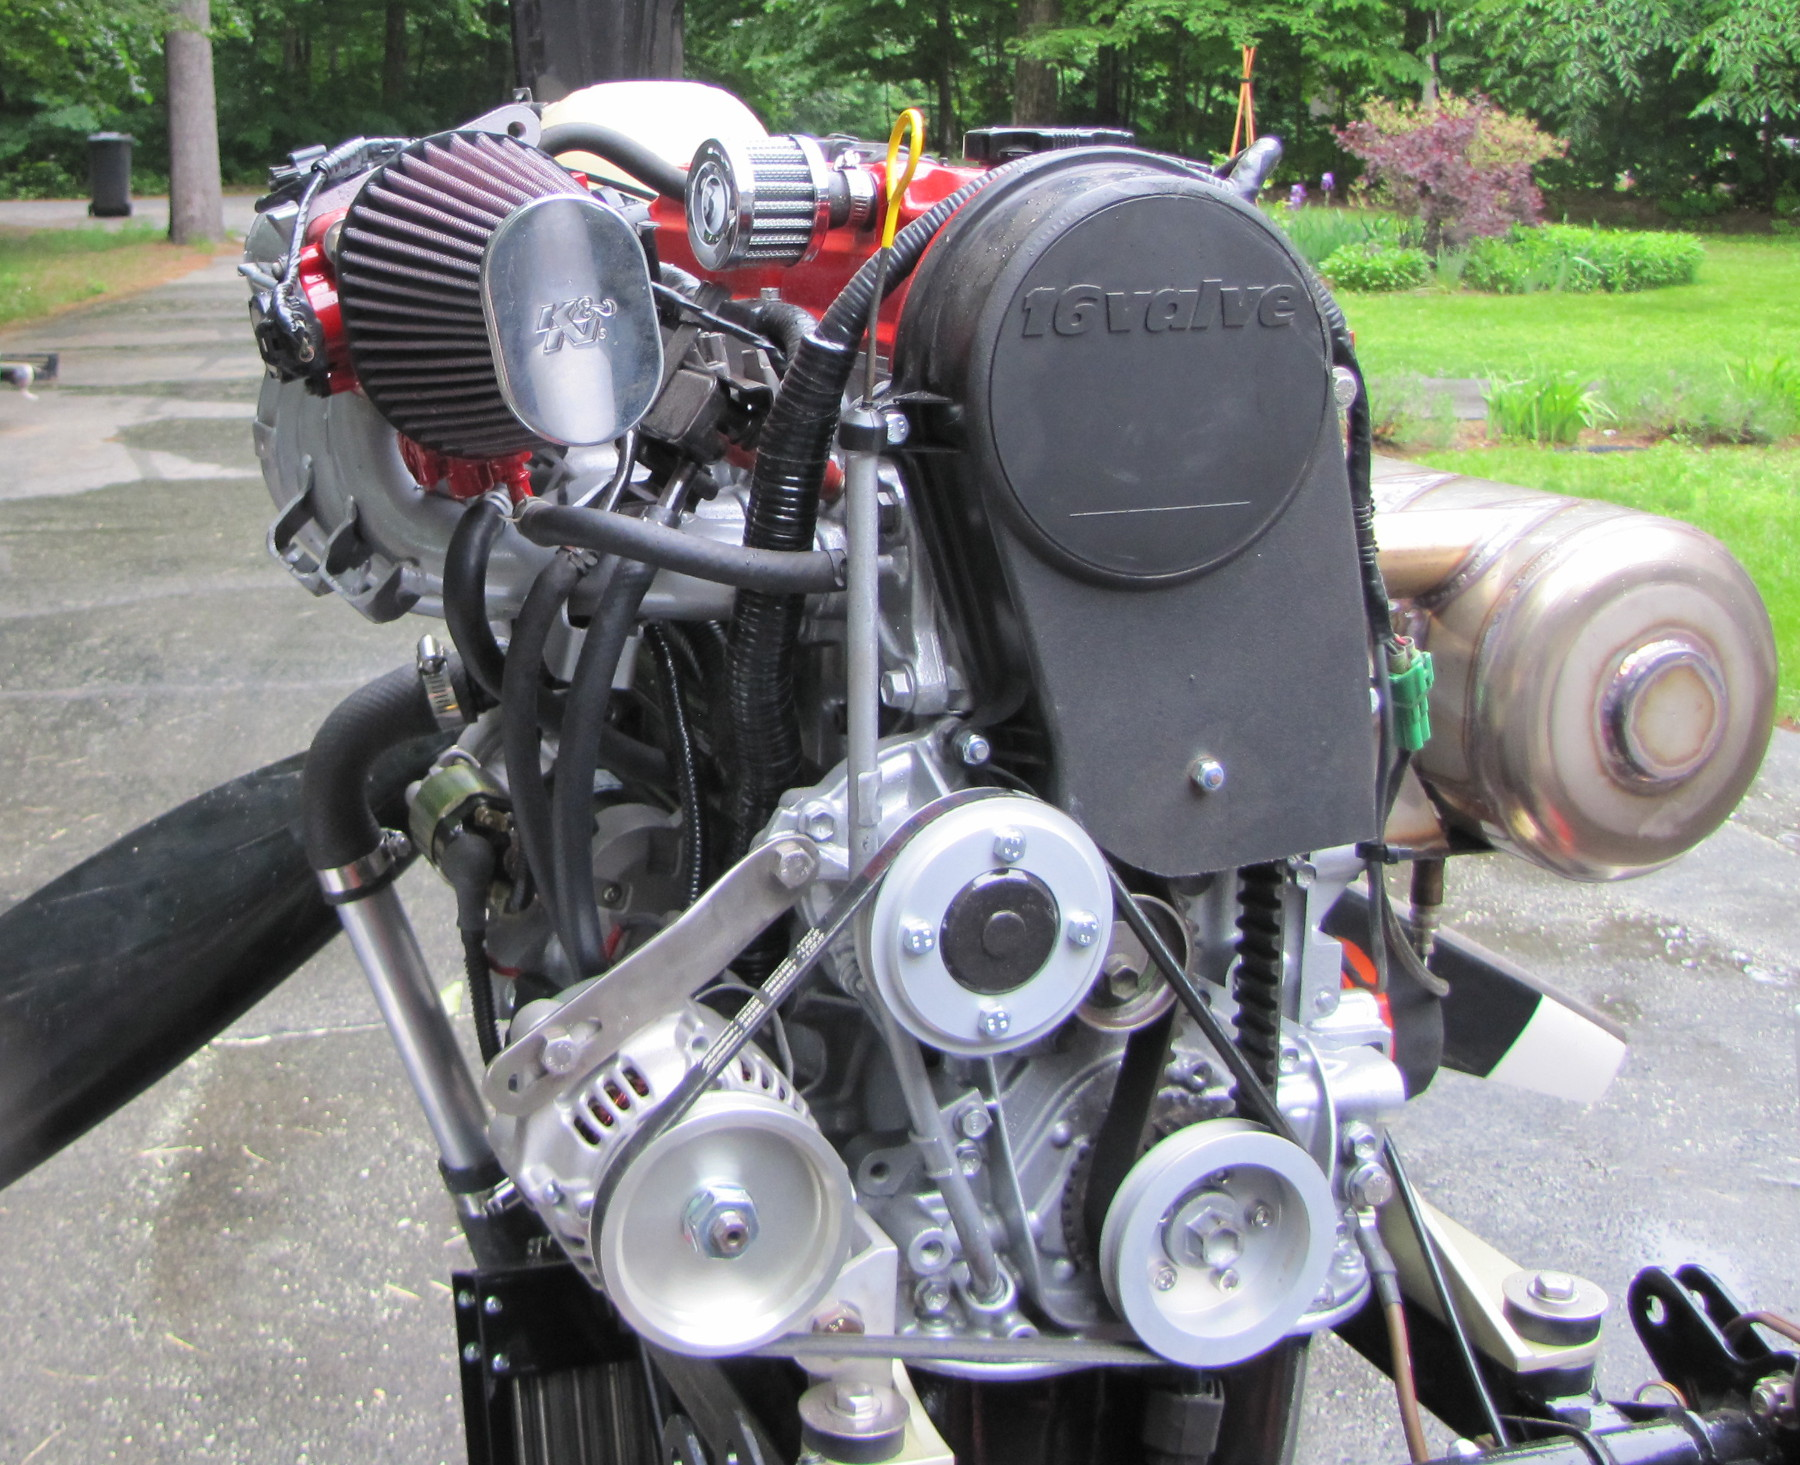 hight resolution of the engine is 16 valves full injection with double ignition coil pack and denso computerised injection and ignition control system